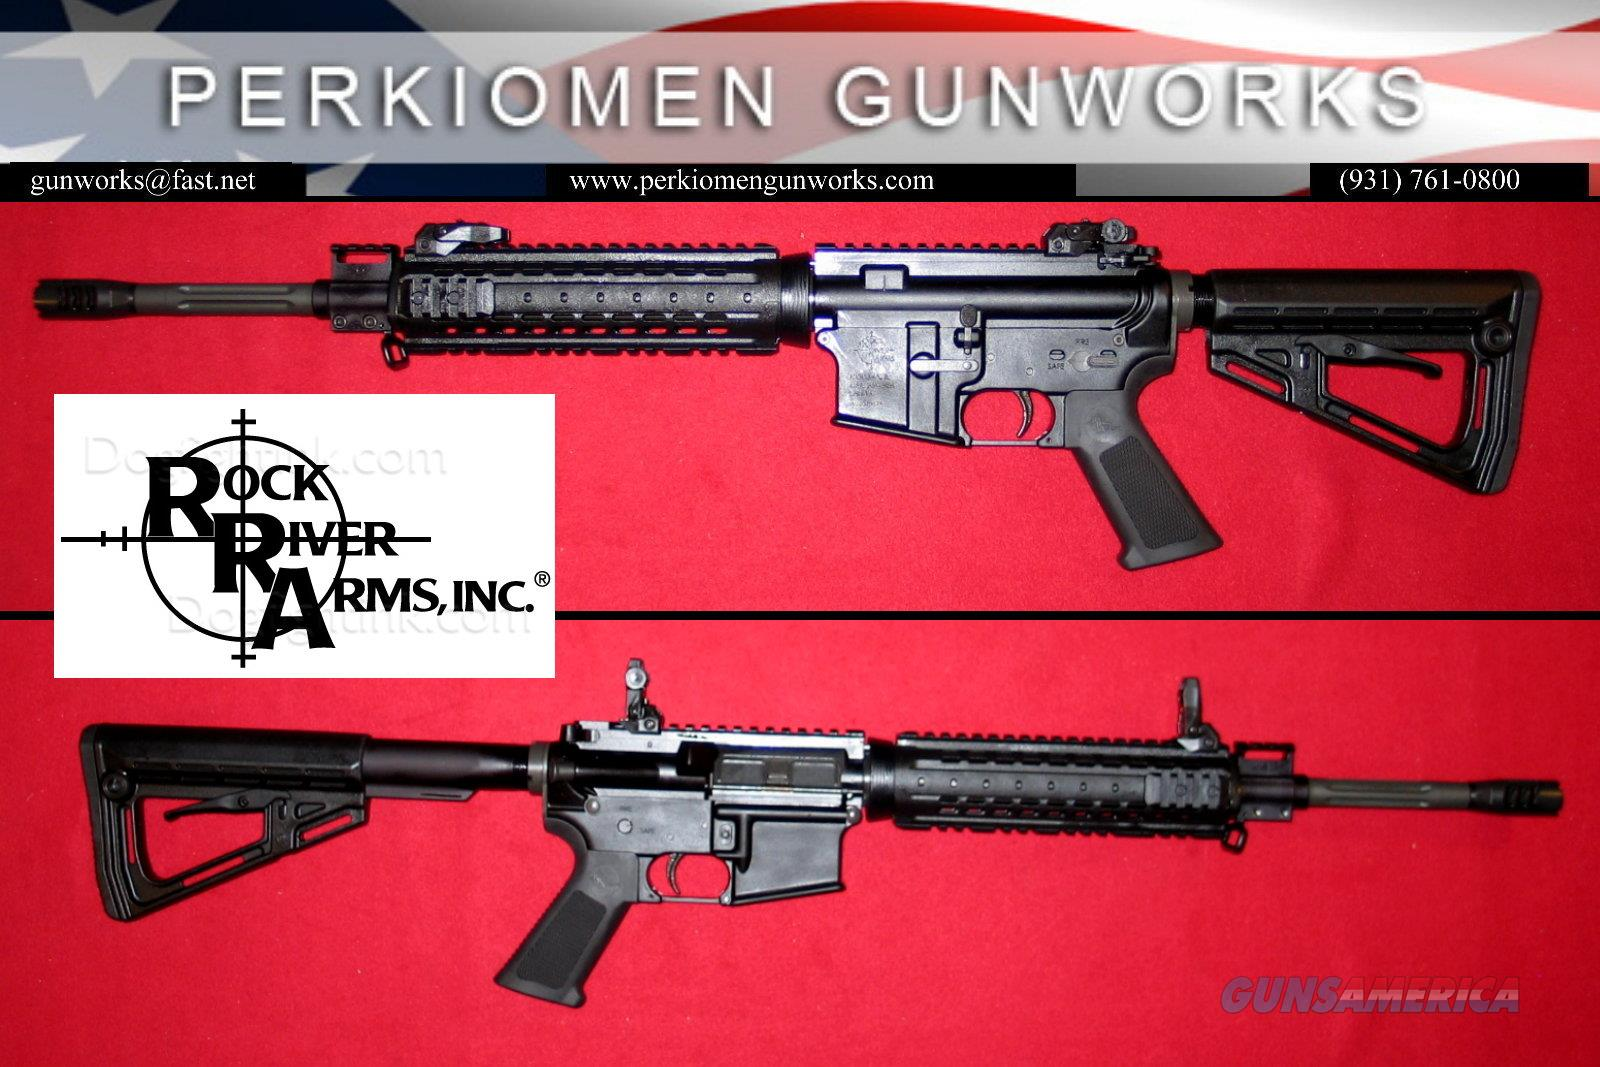 NSP Mid-Length Carbine, 16 inch, 5.56/.223, AR1425, New w/RRA hard case   Guns > Rifles > Rock River Arms Rifles